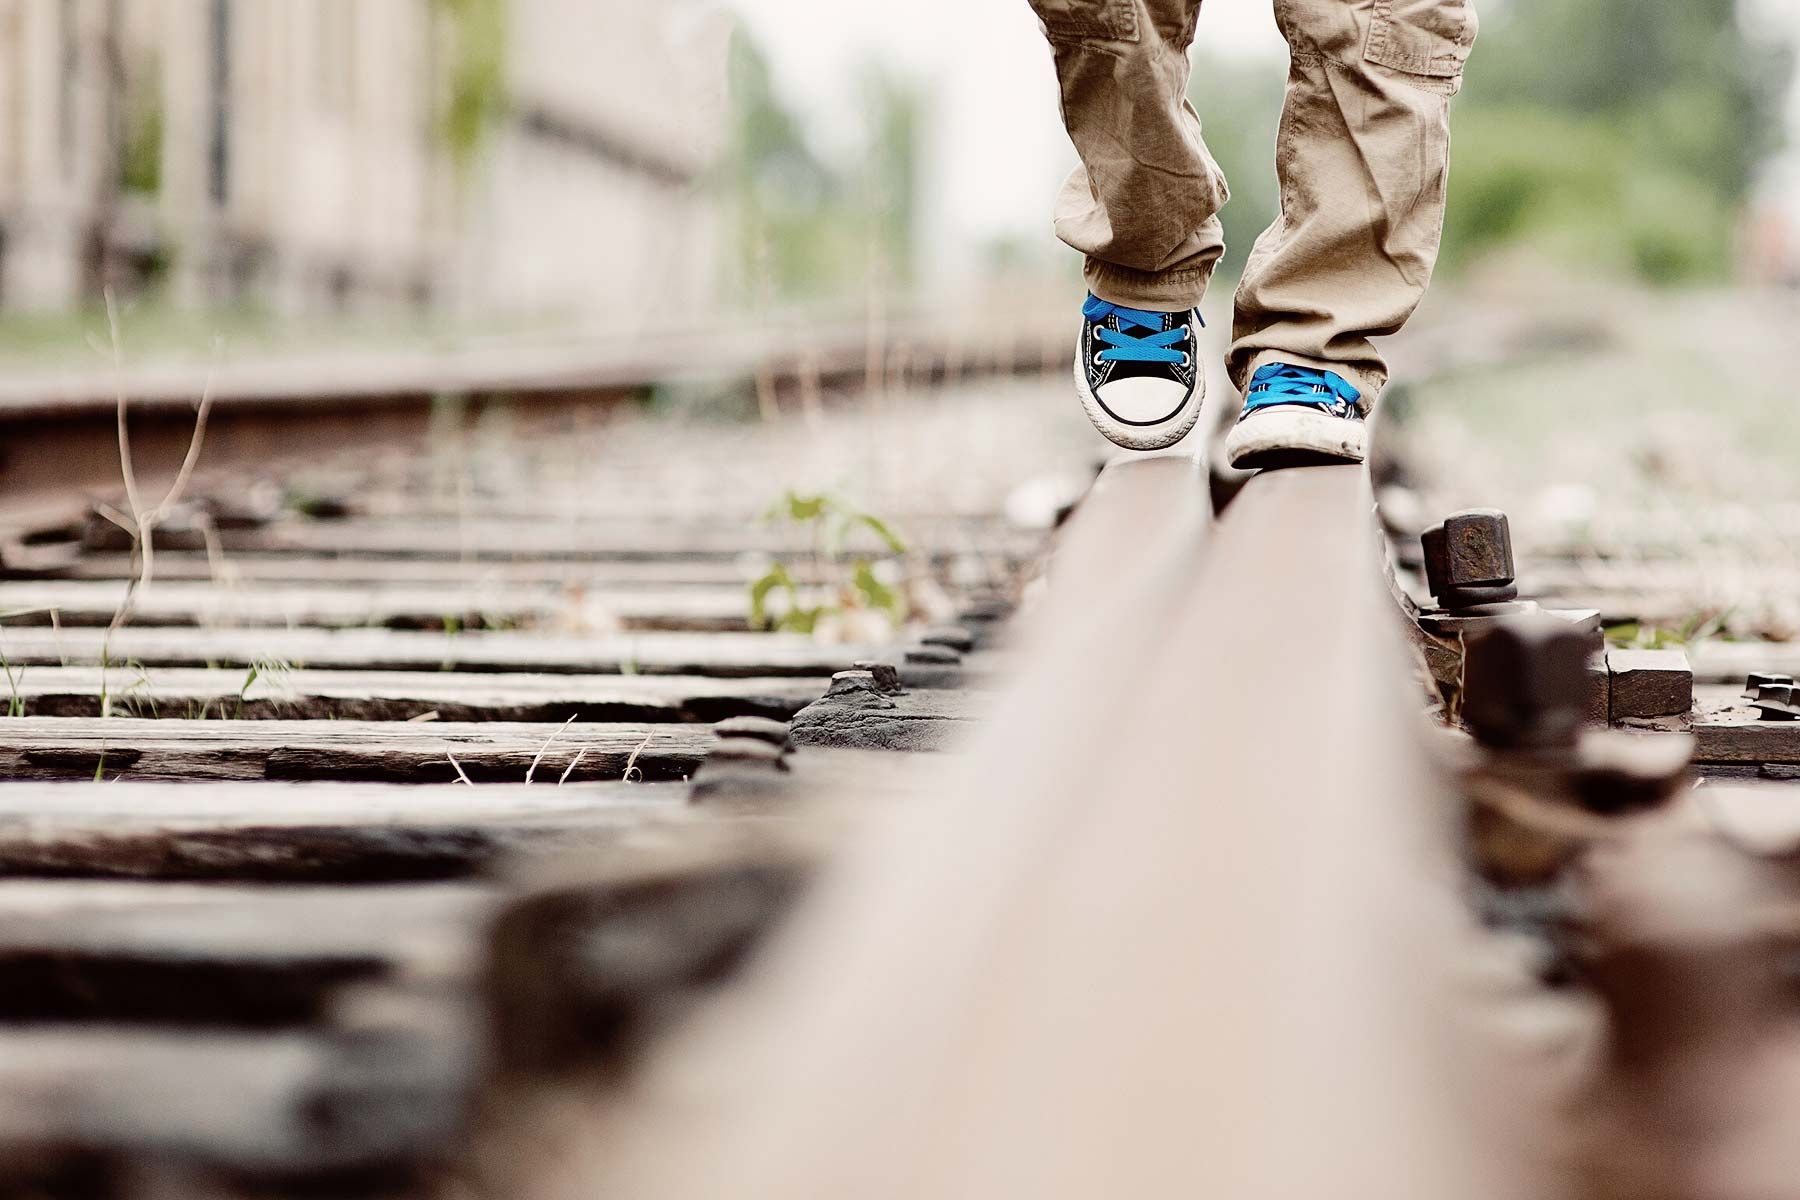 Childs Feet On Tracks